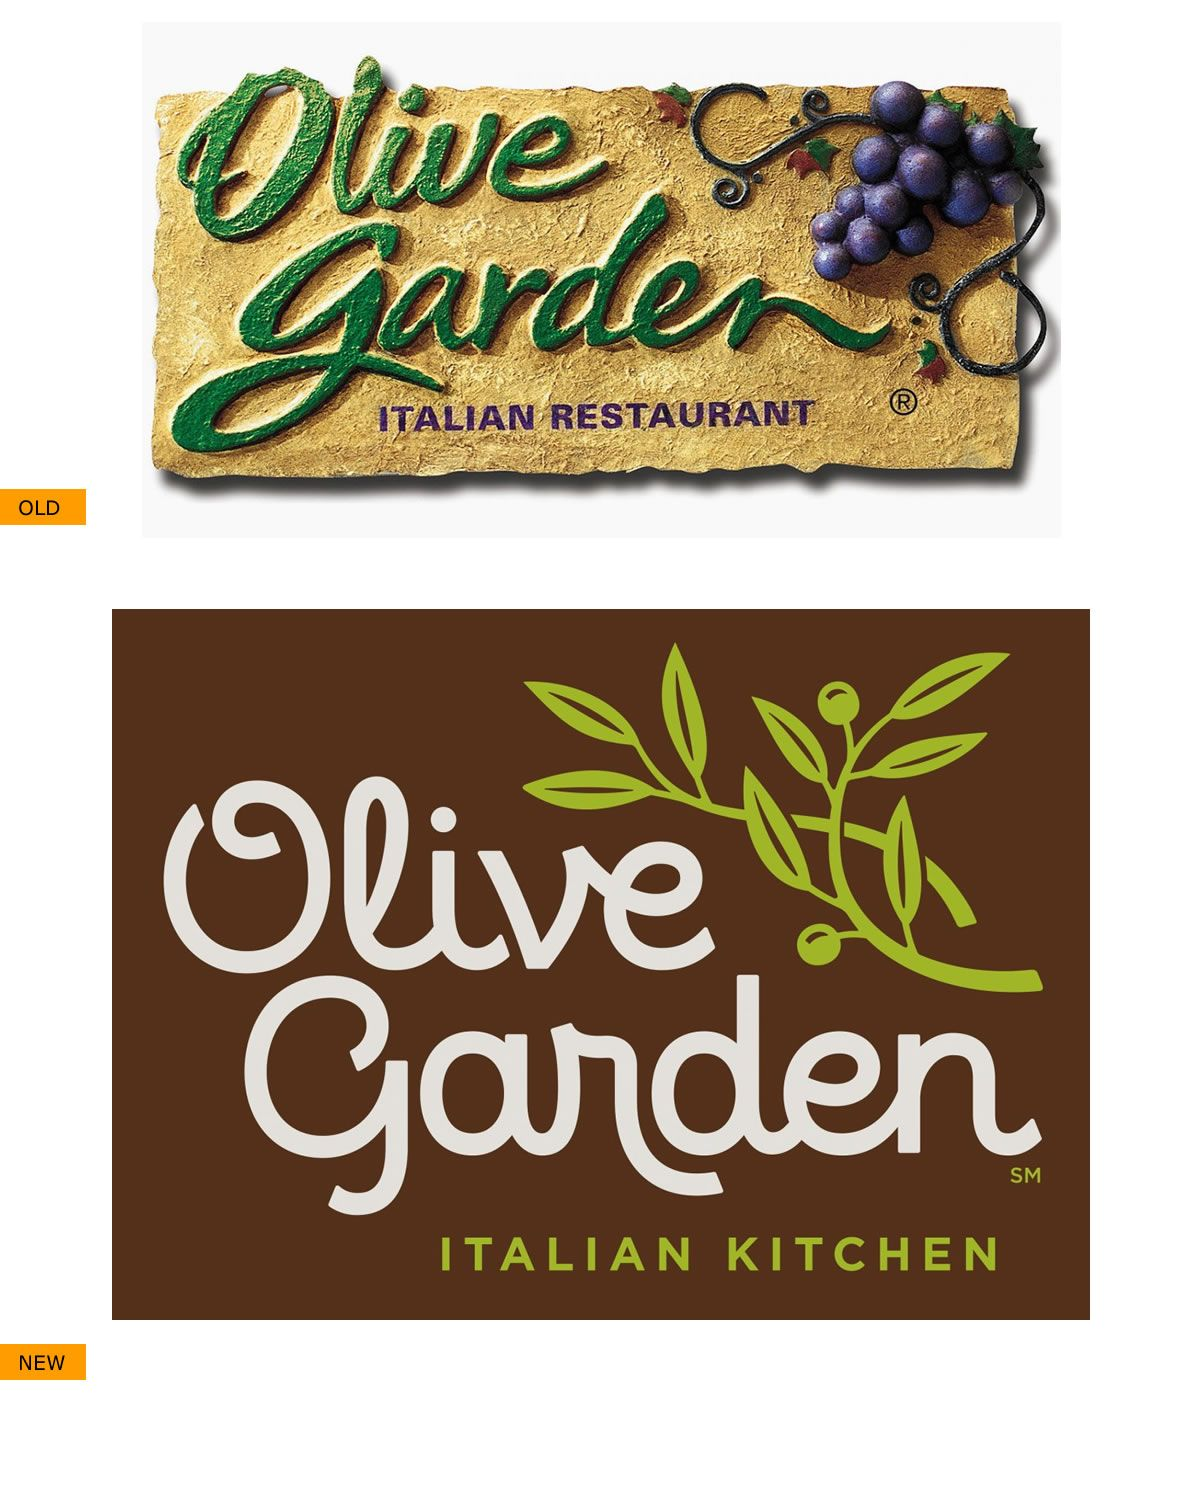 New Olive Garden logo 2014 | Design : Logo Evolution | Pinterest ...